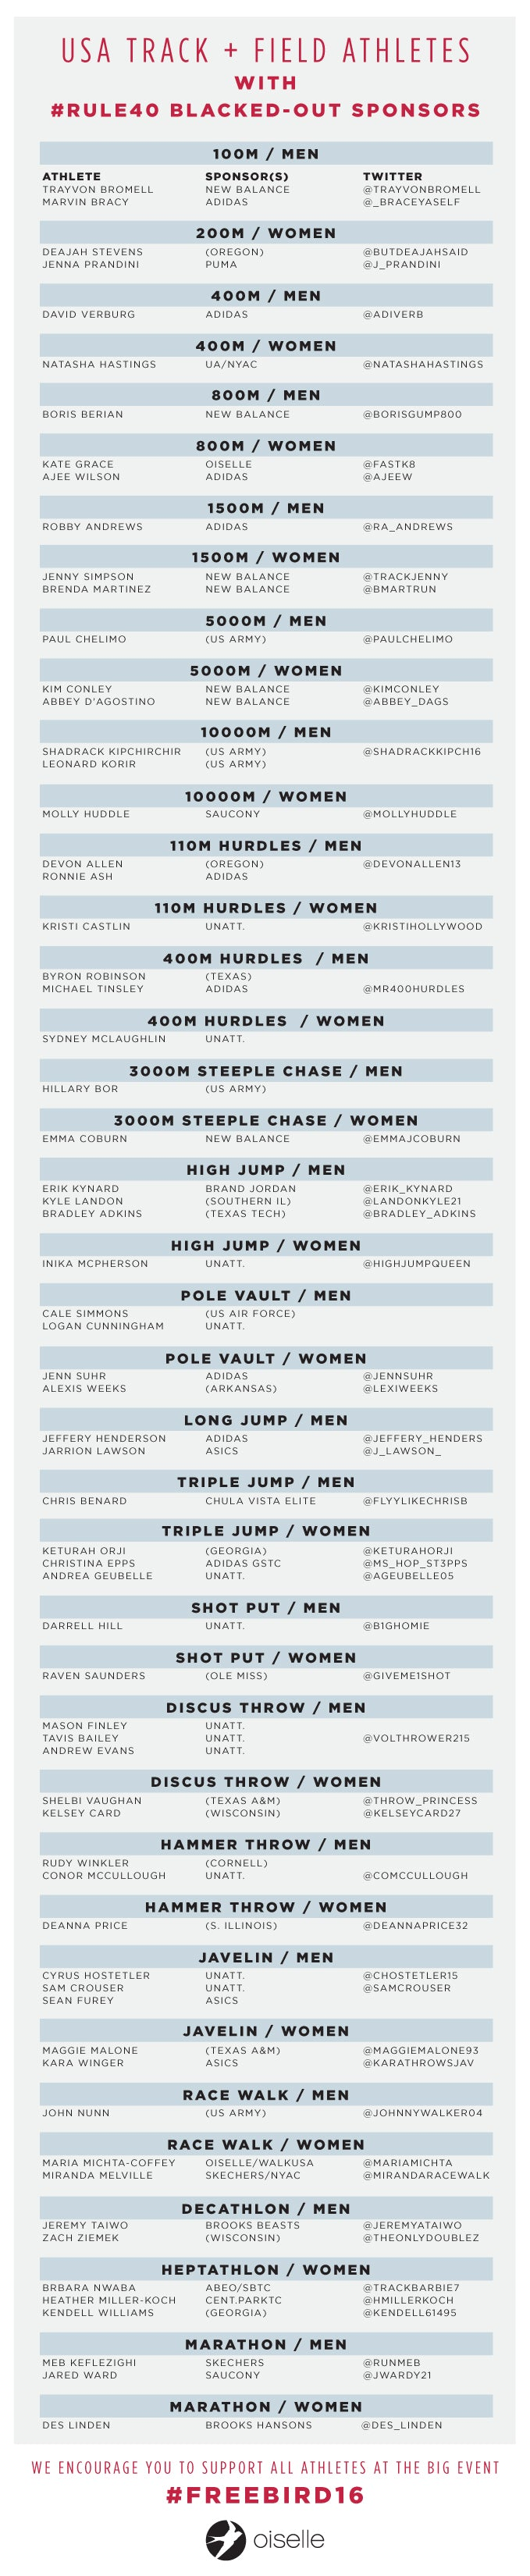 Olympics_AthleteList_edited.jpg